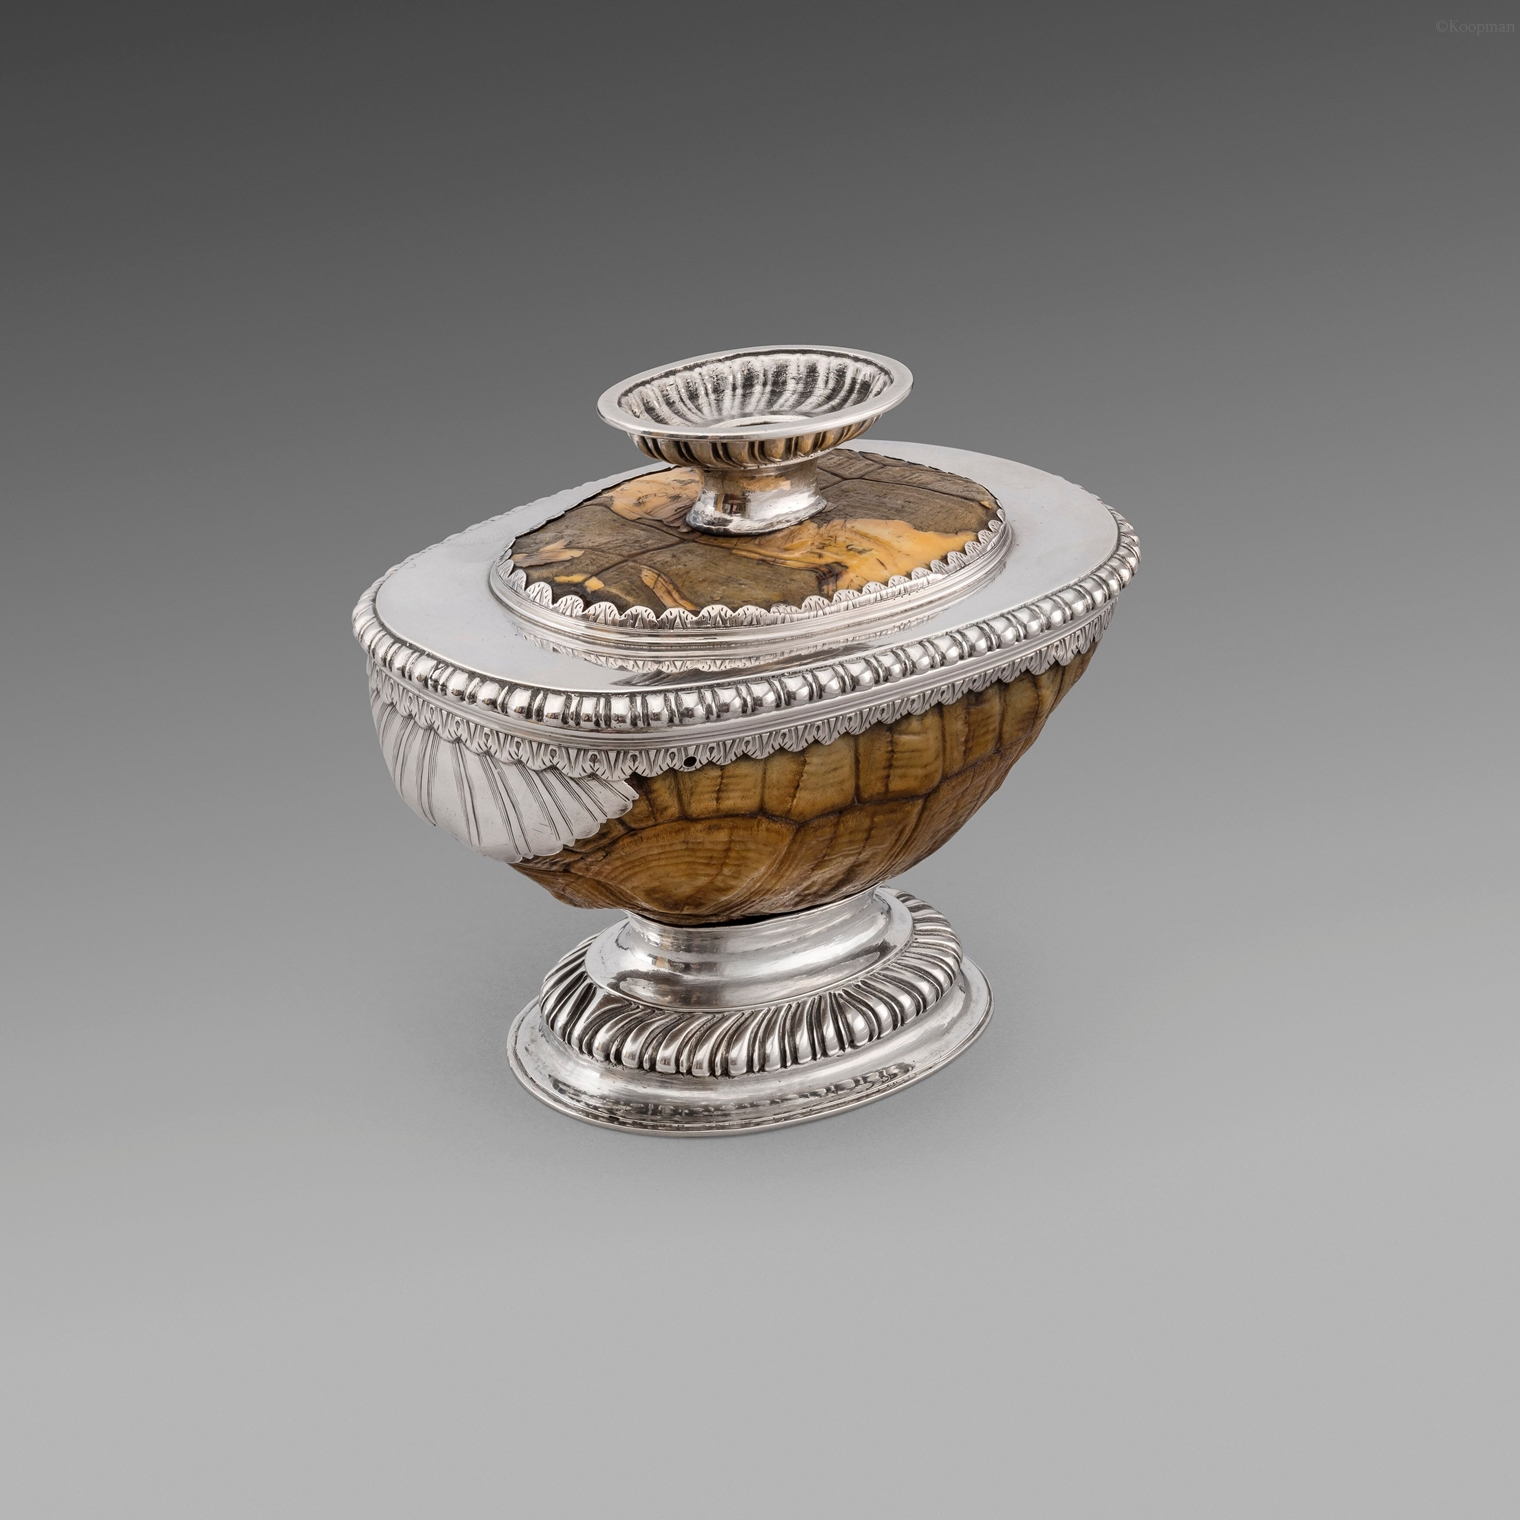 A Silver Mounted Tortoise Cup